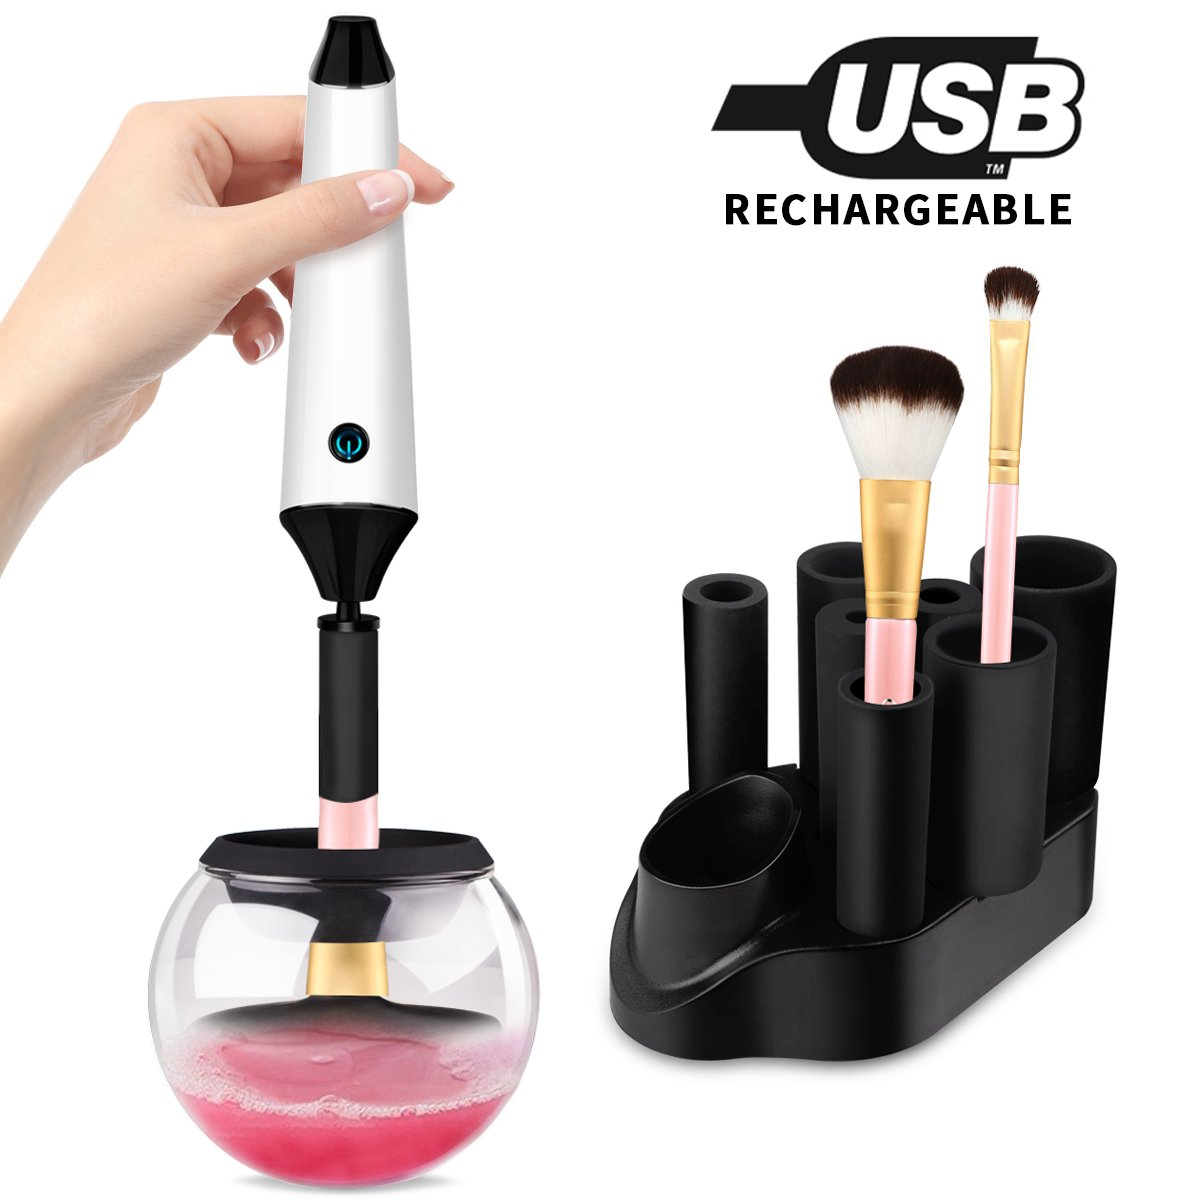 Makeup Brush Cleaner, Morpilot Rechargeable Electronic Spinning Brushes Cleaner and Dryer Machine, Instantly 360 Rotation Cleans and Dries Makeup Brushes in Seconds(Include 7 Rubber Collars) (Brush Cleaner)